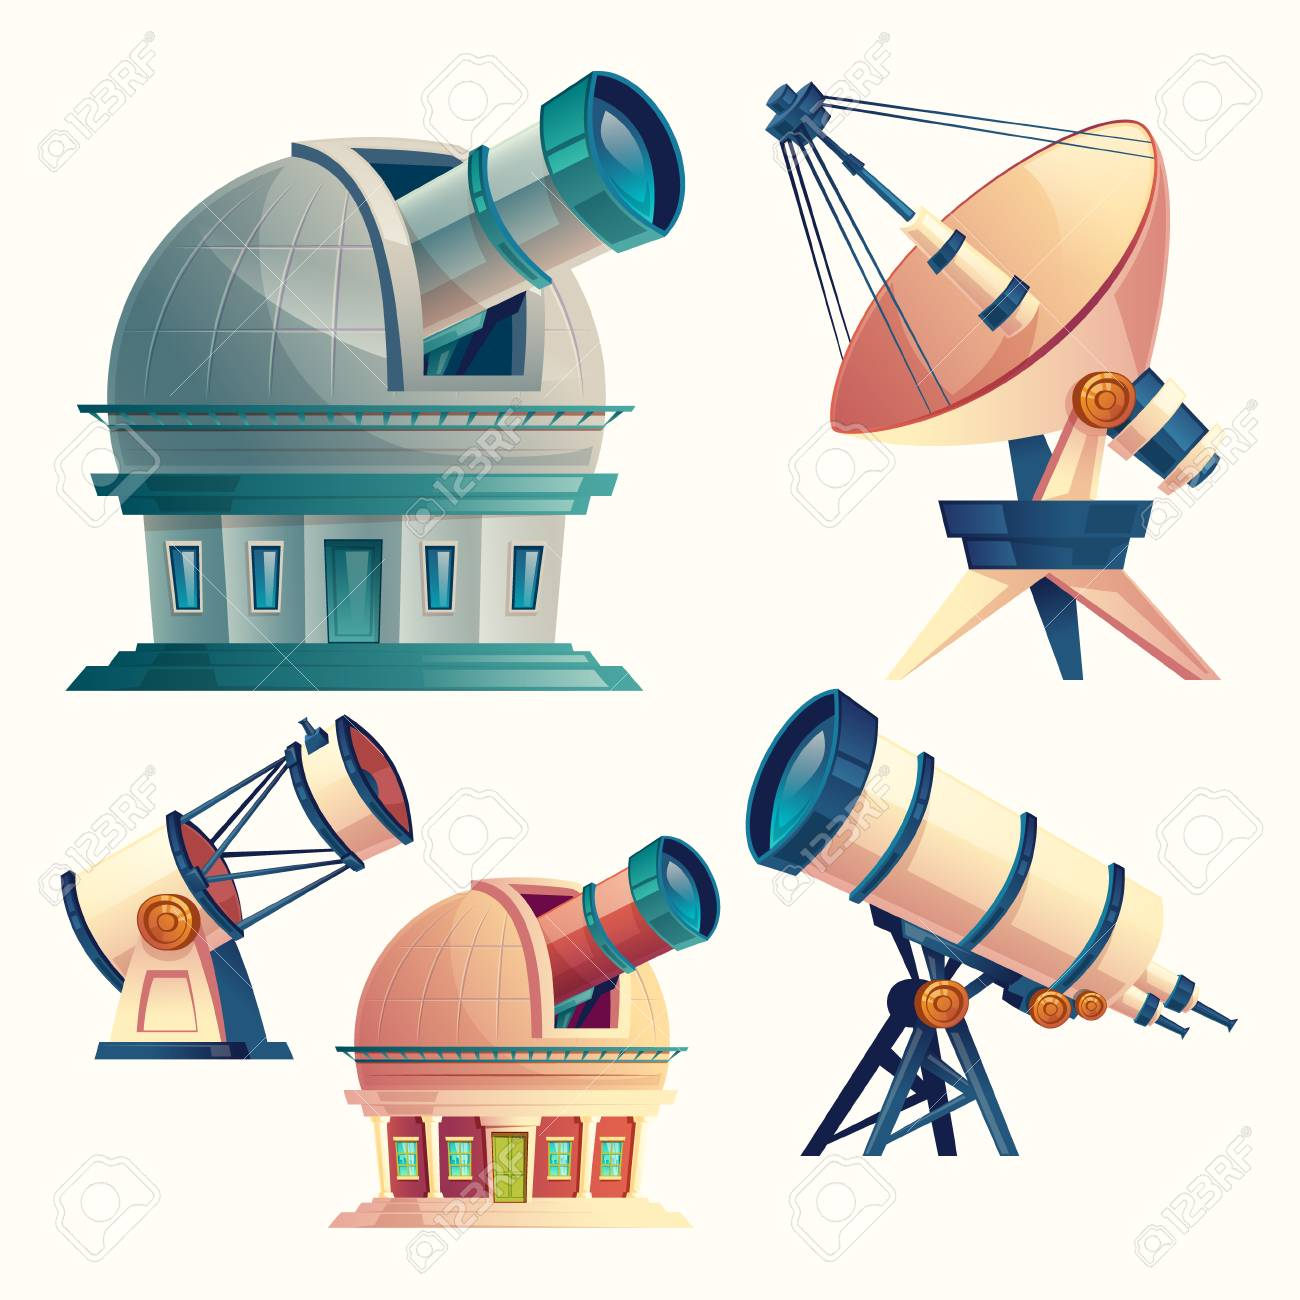 Vector cartoon set with astronomical telescopes, observatories, planetarium, satellite dish. Scientific equipment and optical devices with lenses for observation the sky, stars, cosmos, planets - 104538356